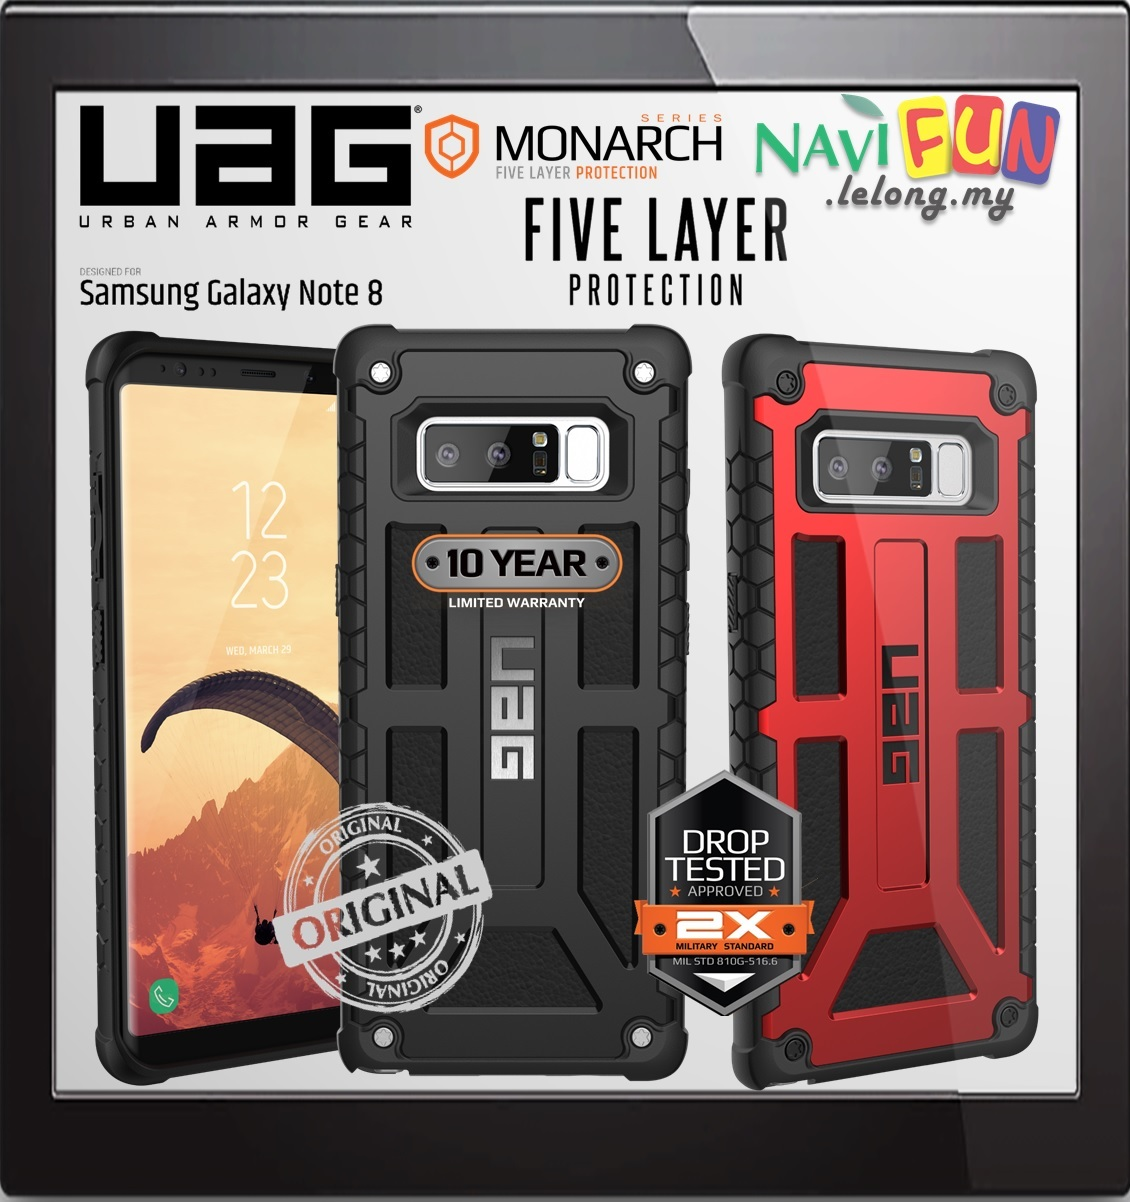 Galaxy s6 cases shop samsung cases online uag urban armor gear - Urban Armor Gear Uag Monarch Case For Samsung Galaxy Note 8